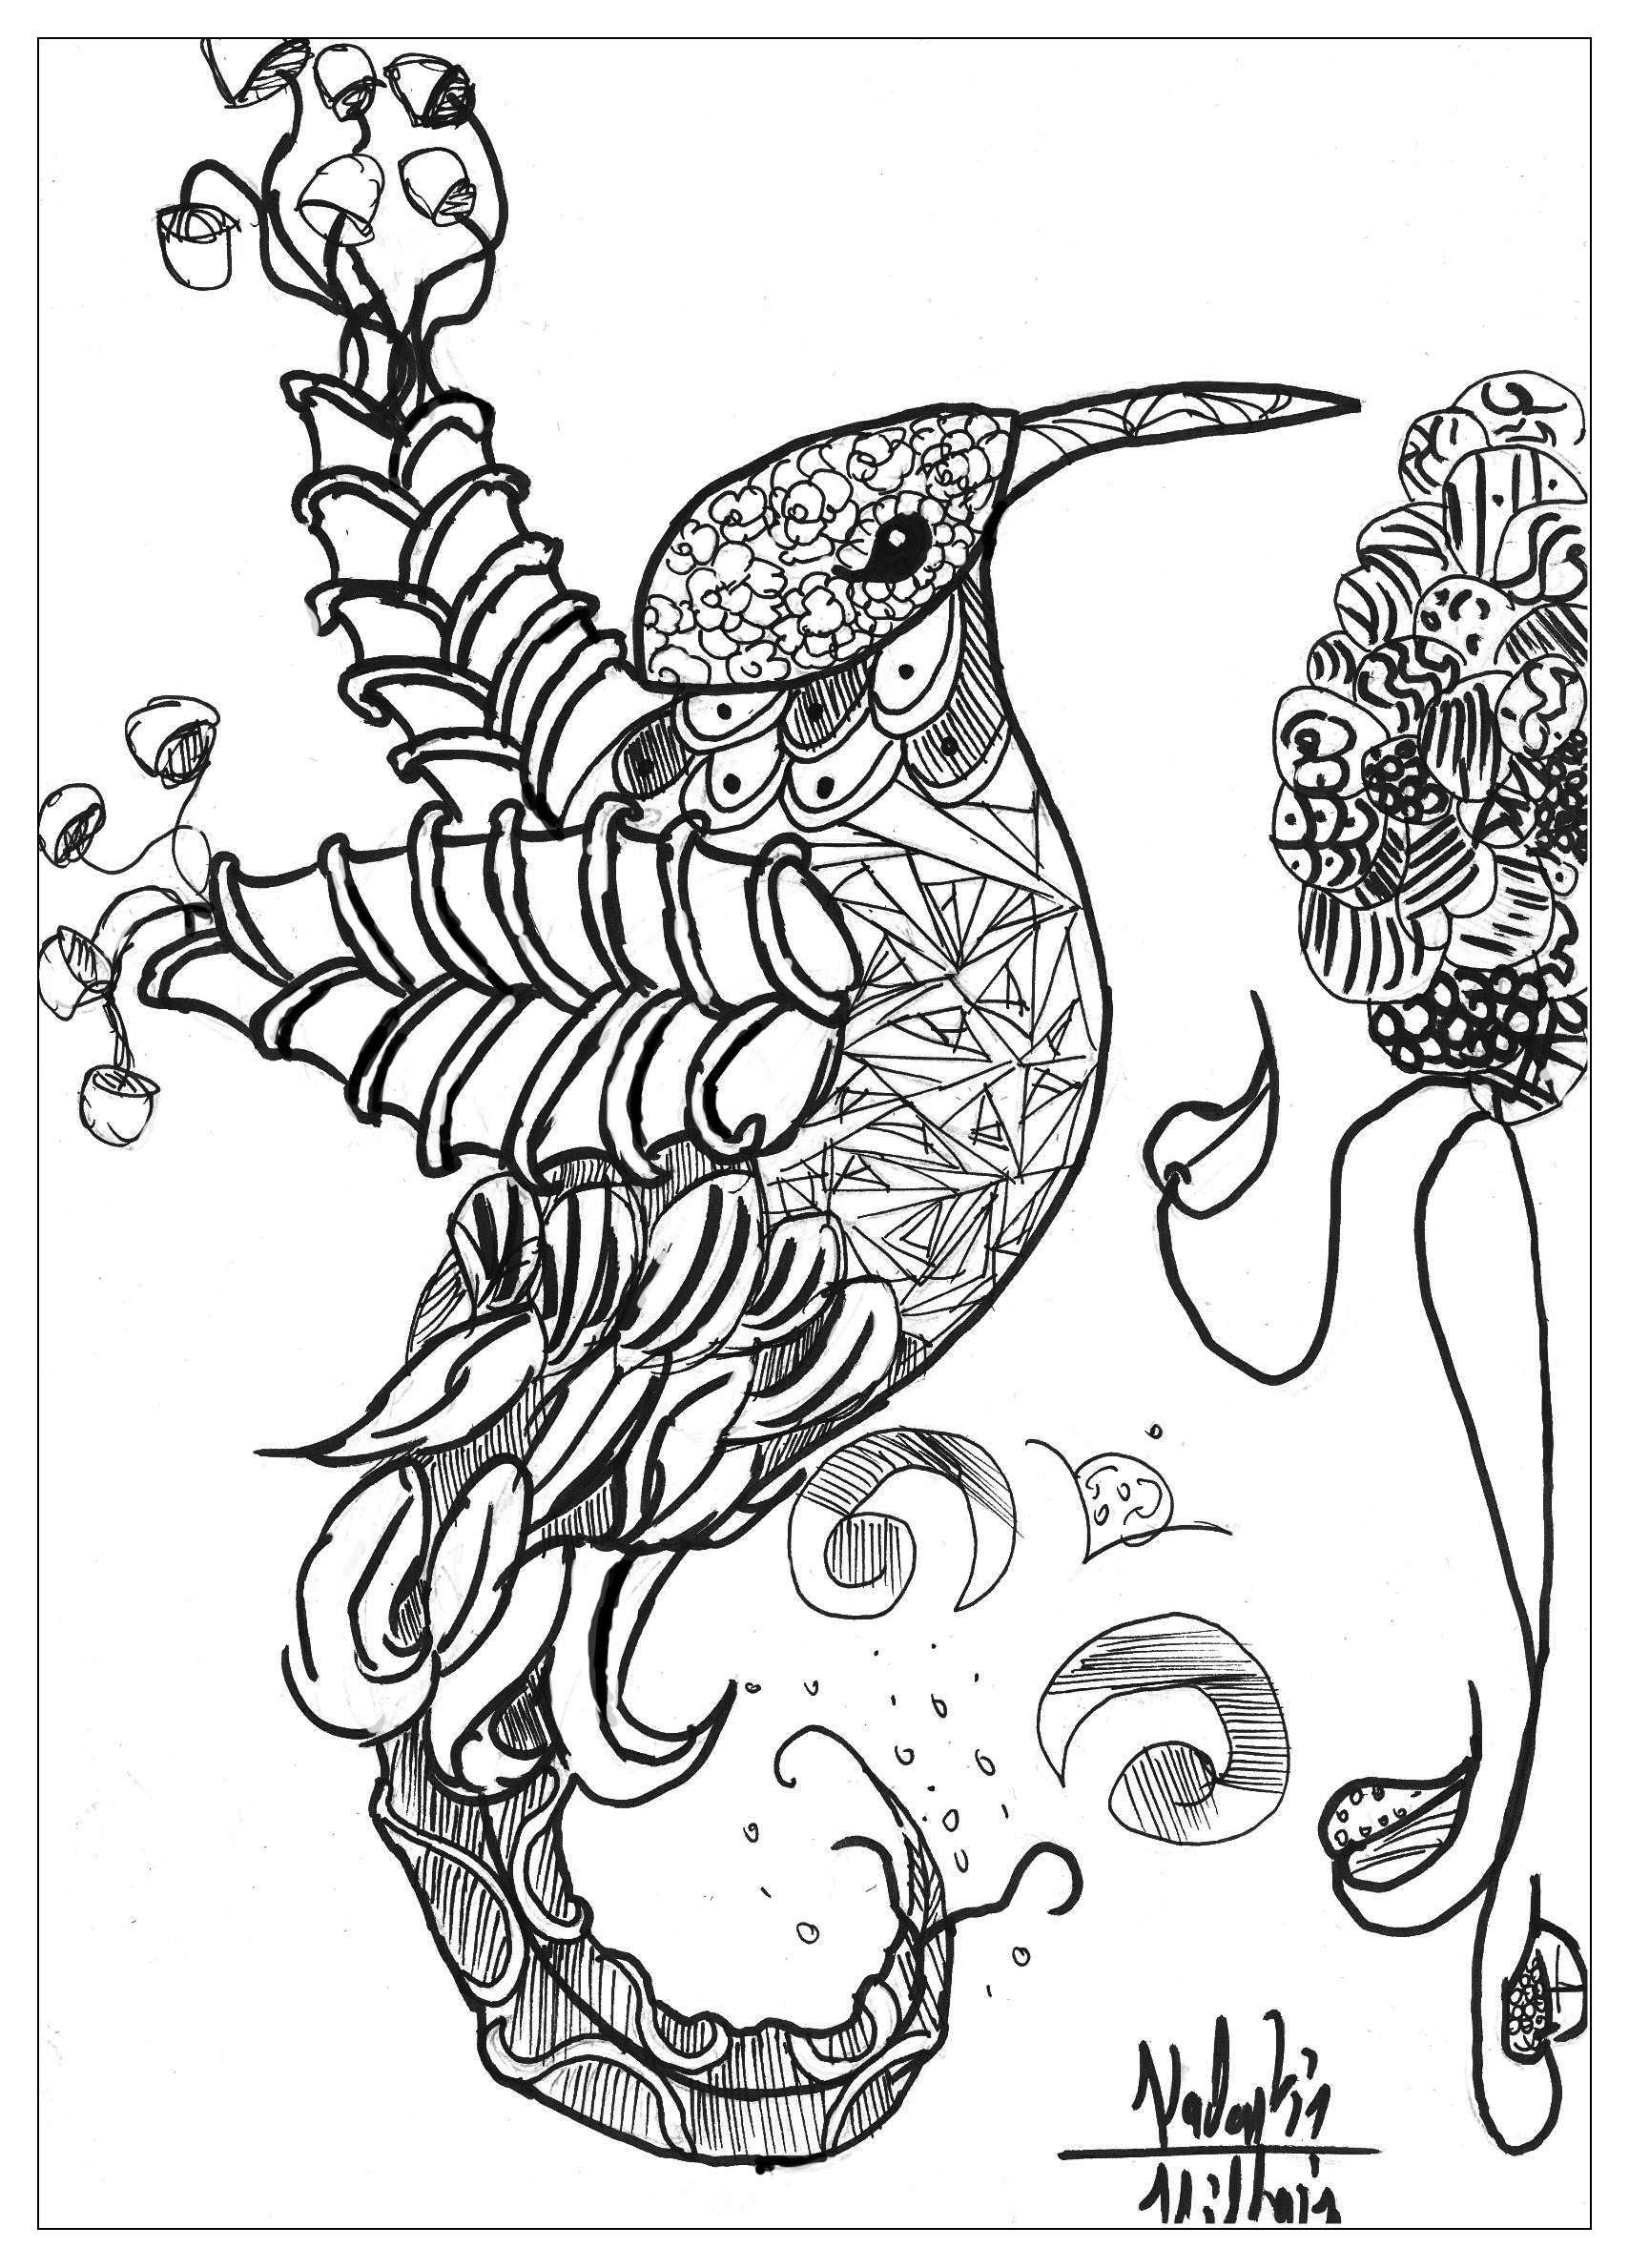 Coloring page animals bird valentin this bird have a particular thing no